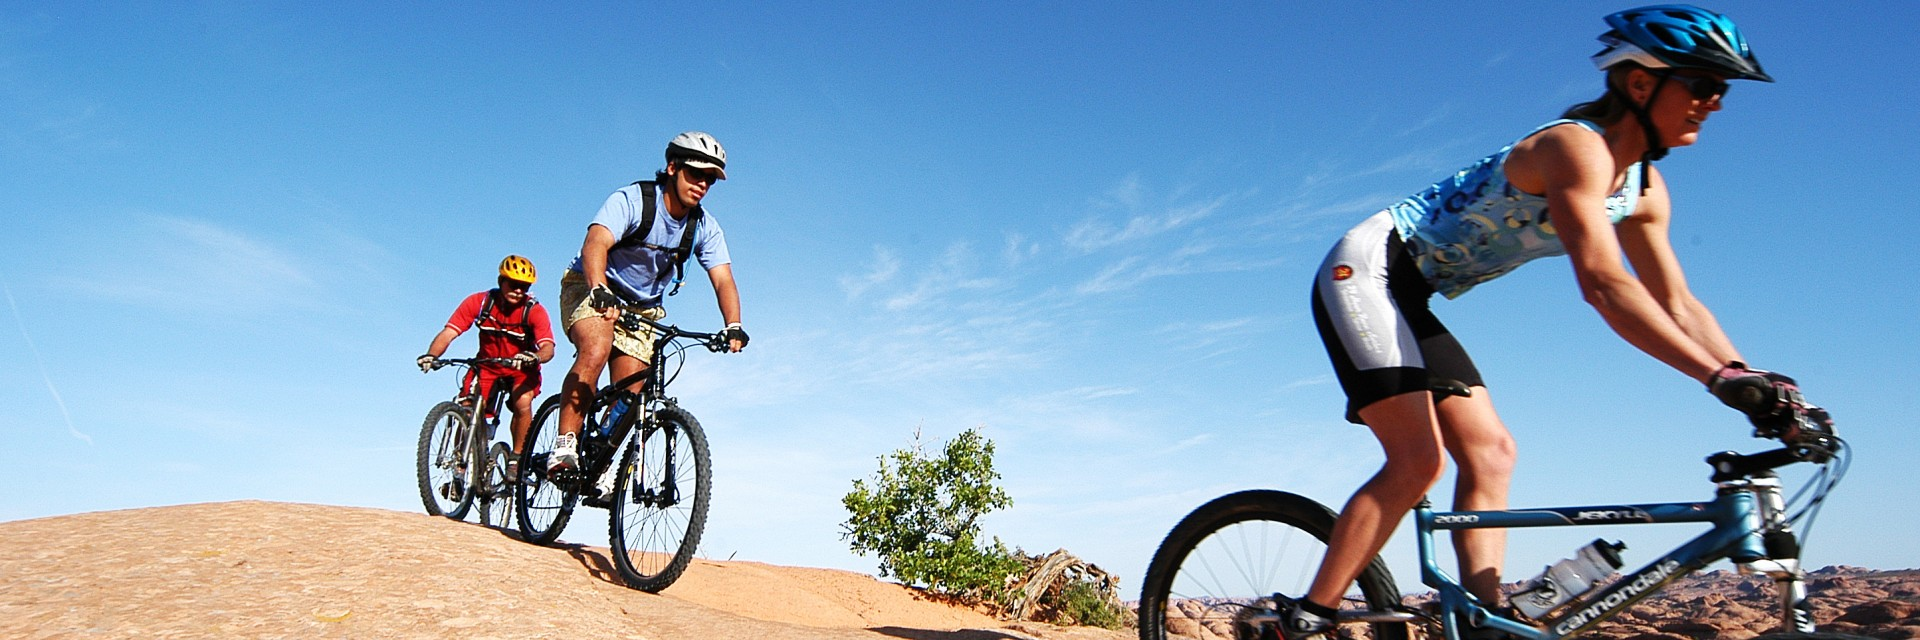 Three riders drop off a tall fin on a guided tour of the Slickrock Trail in Moab, UT